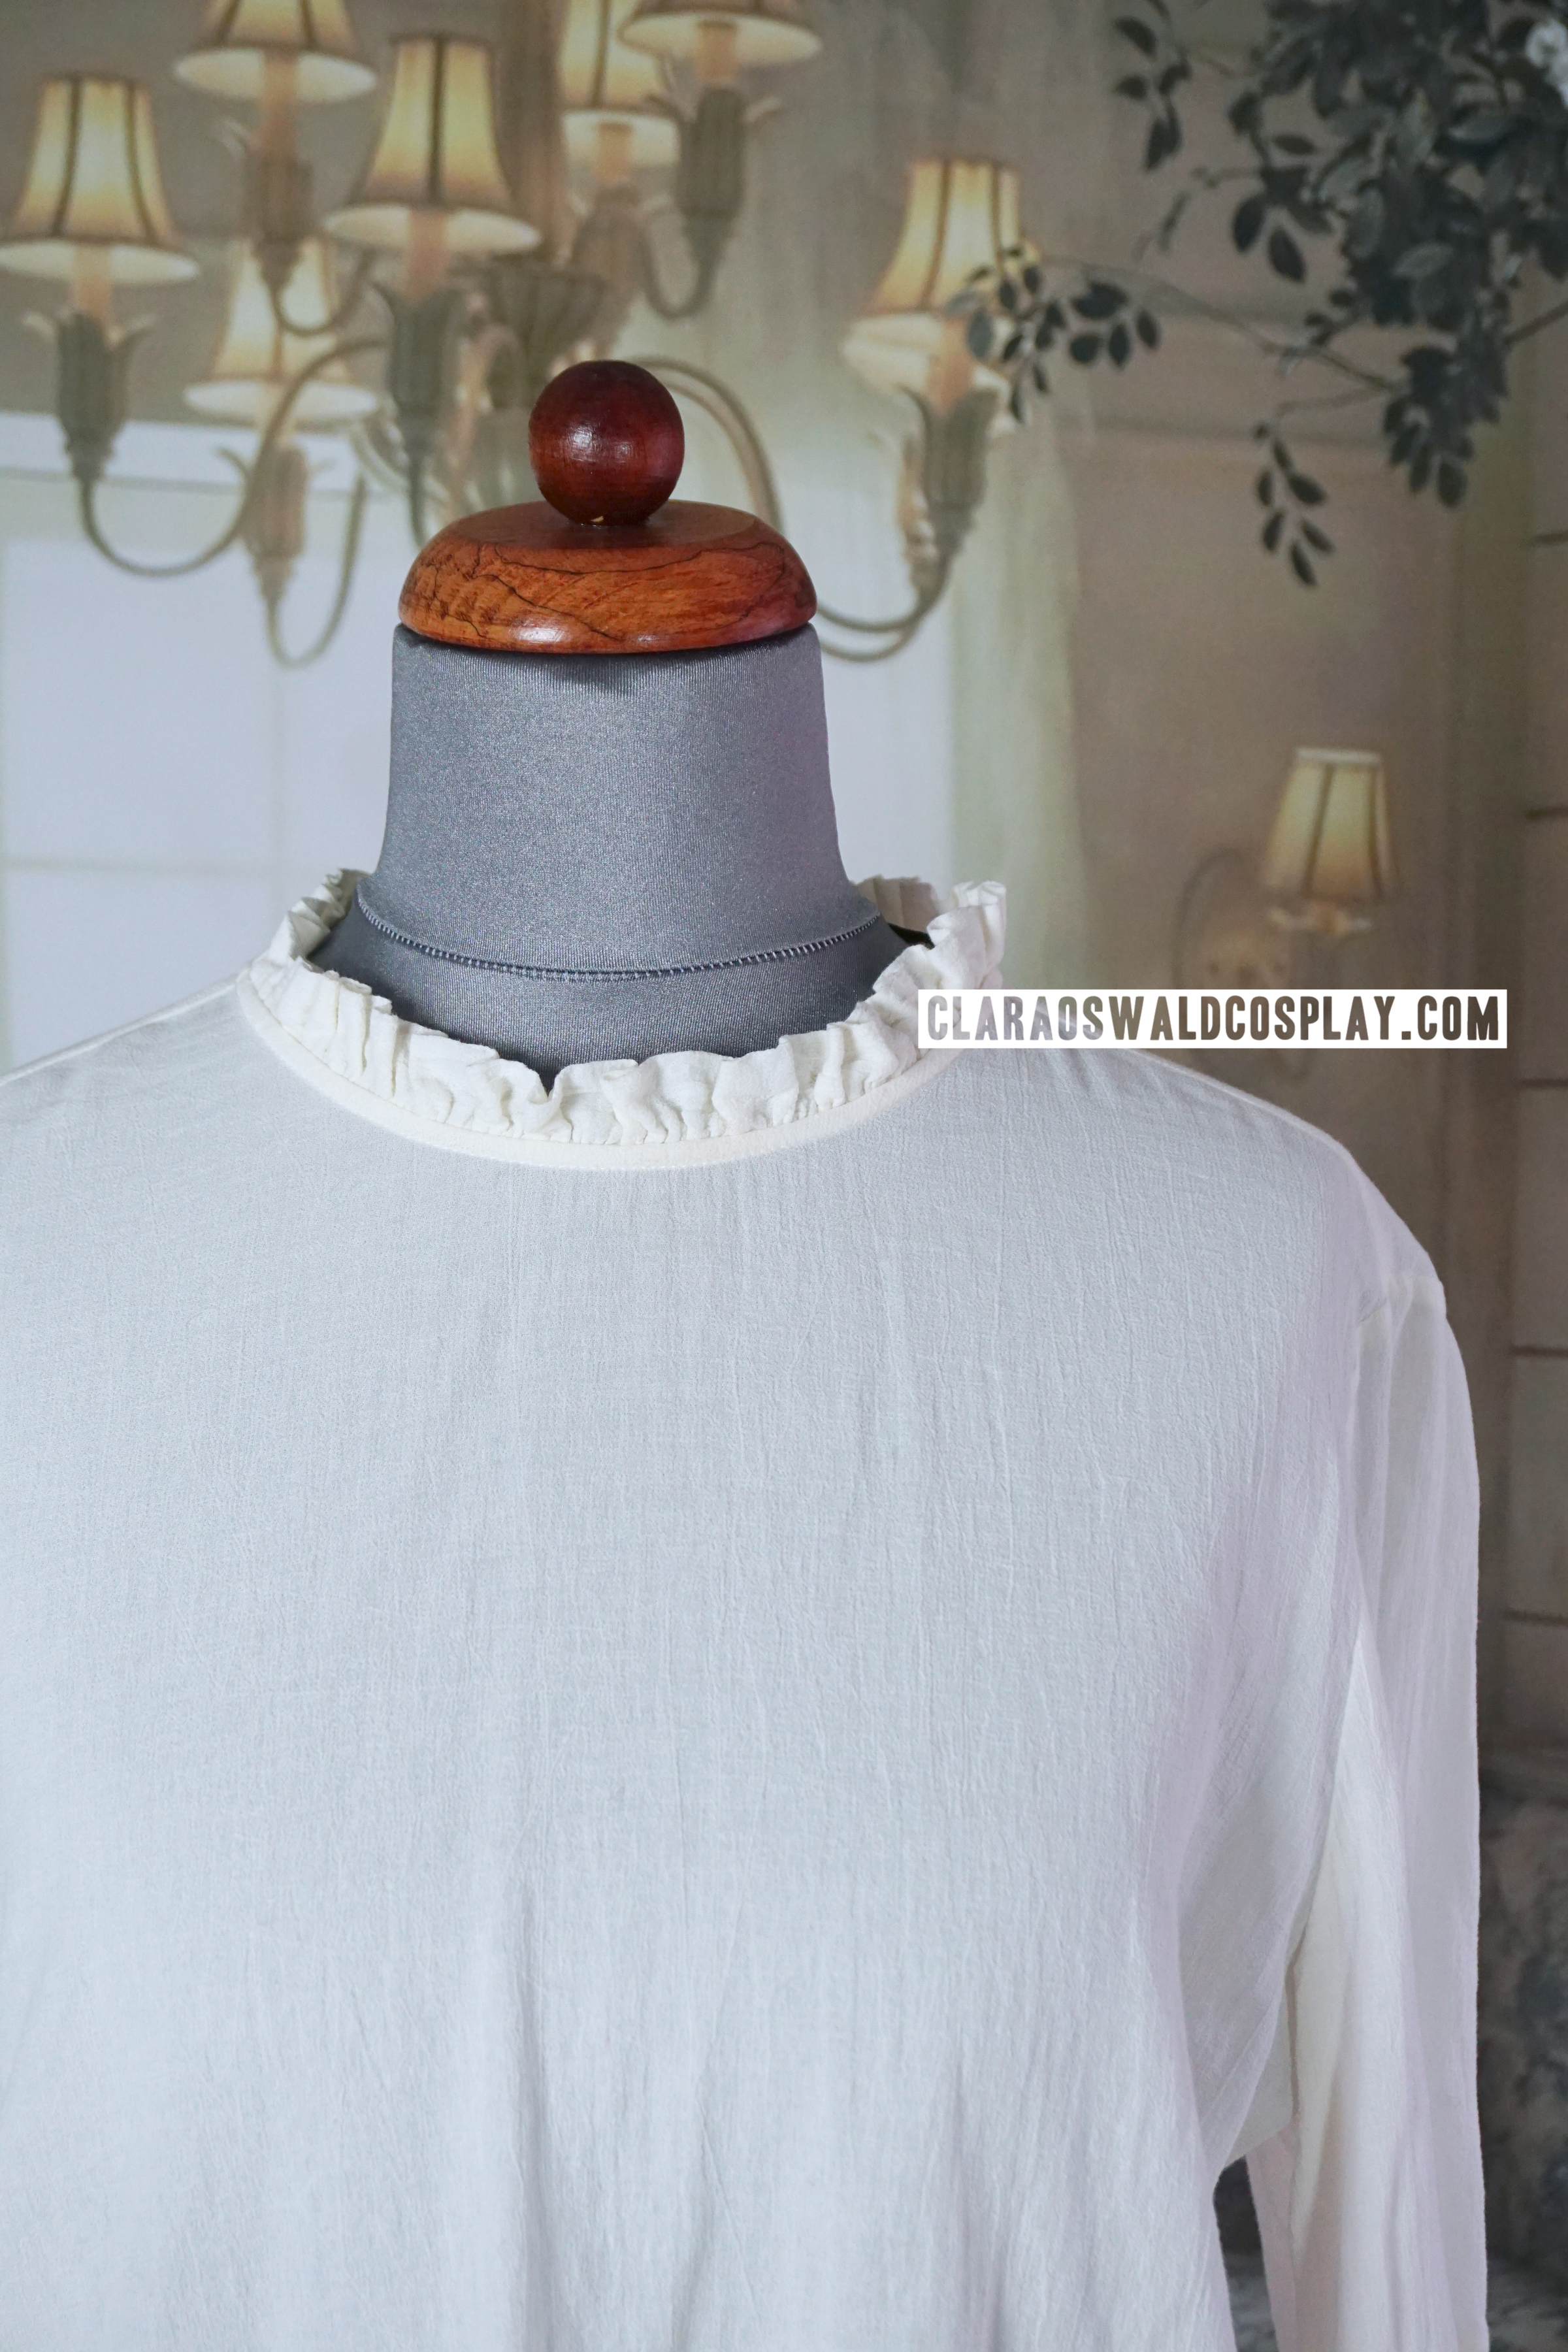 A closer look at the neck part of the blouse